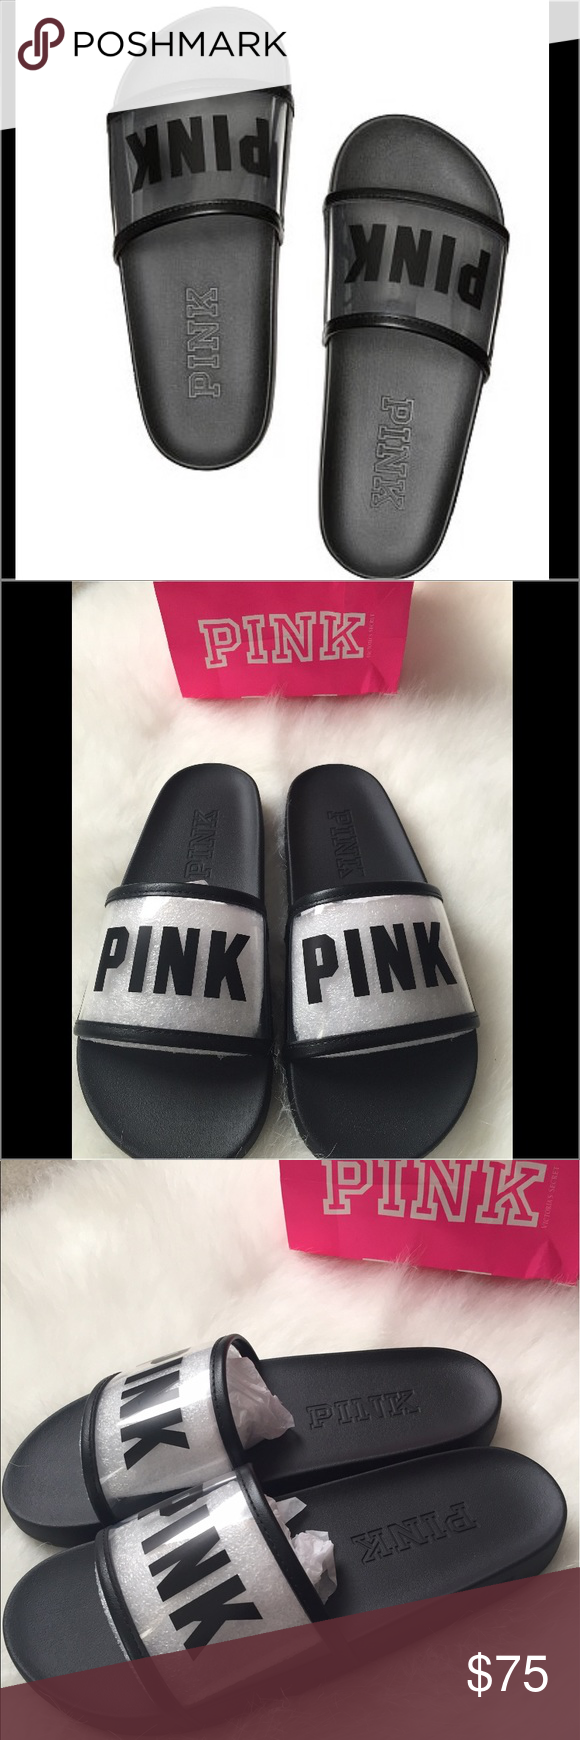 183e38052885 Victoria s Secret PINK Clear Single Strap Slides 💕Make these your go-to  slide for